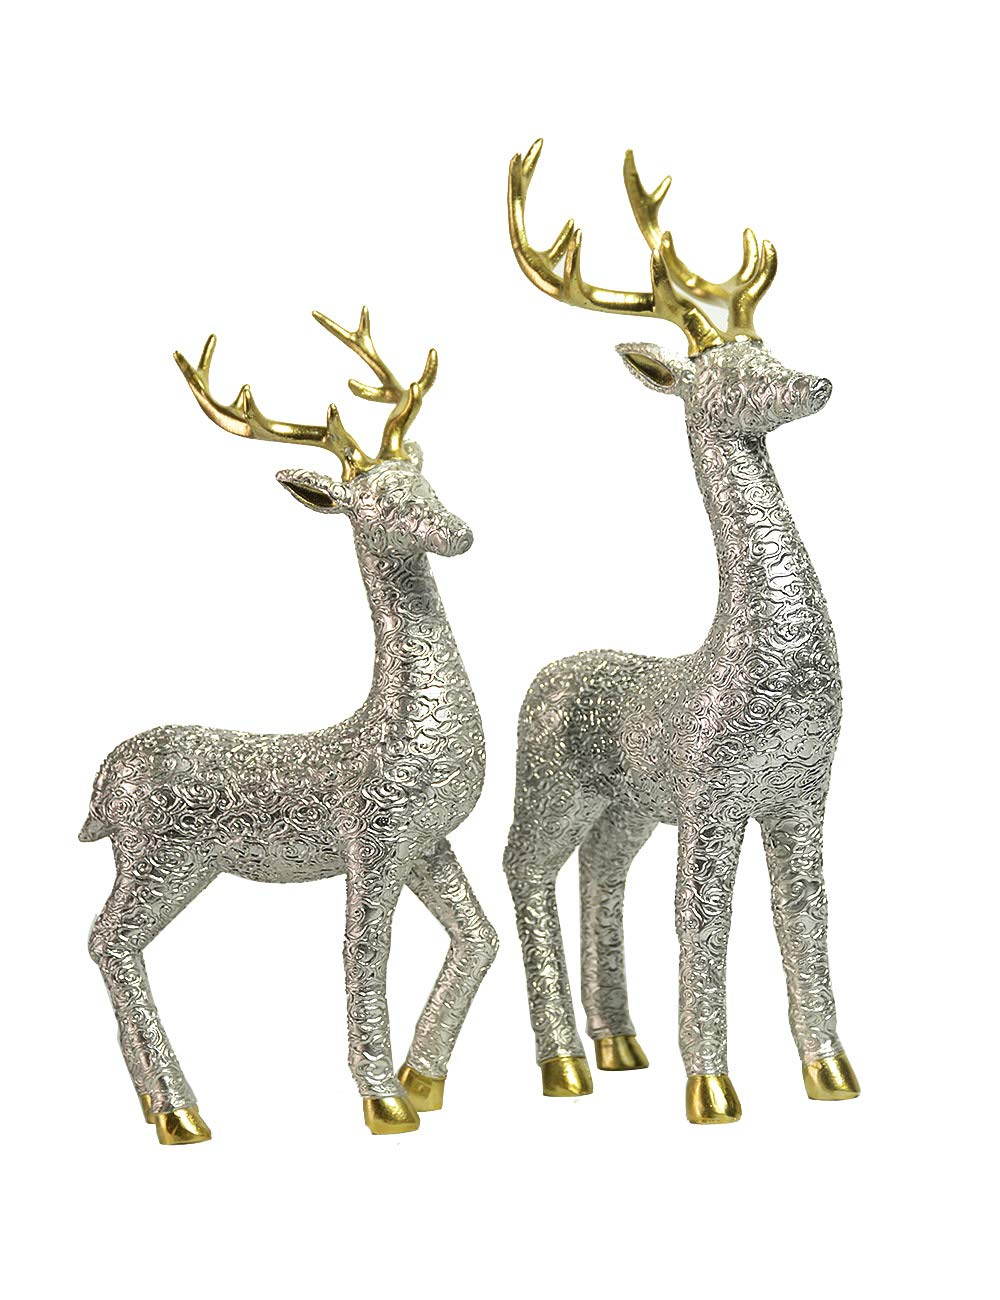 HauCoze 2pcs Deer Statue Reindeer Stag Sculpture,Tabletop Figurine,Home Decoration,Gift for Kids Present,Hand-painted Resin Decor Silver